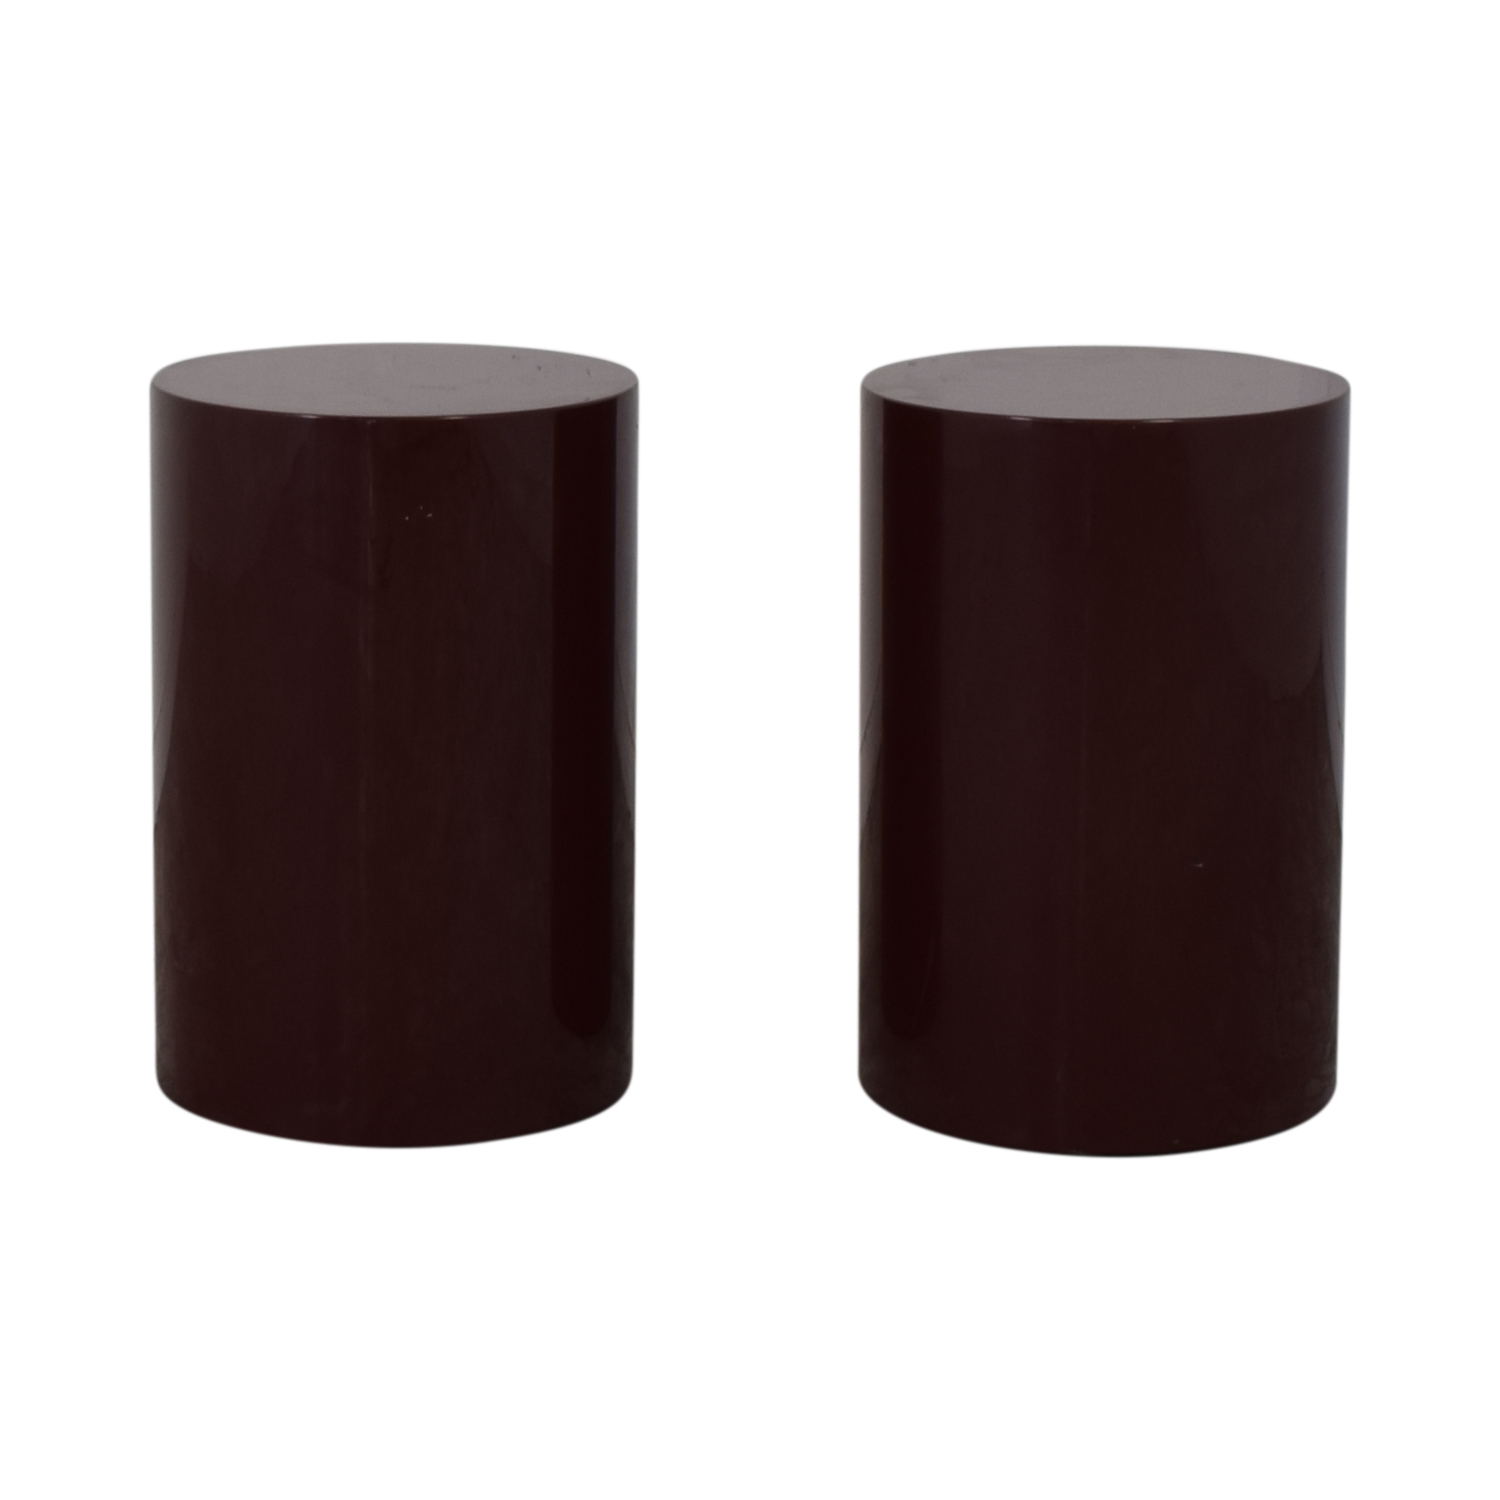 buy Intrex Round End Tables  Tables